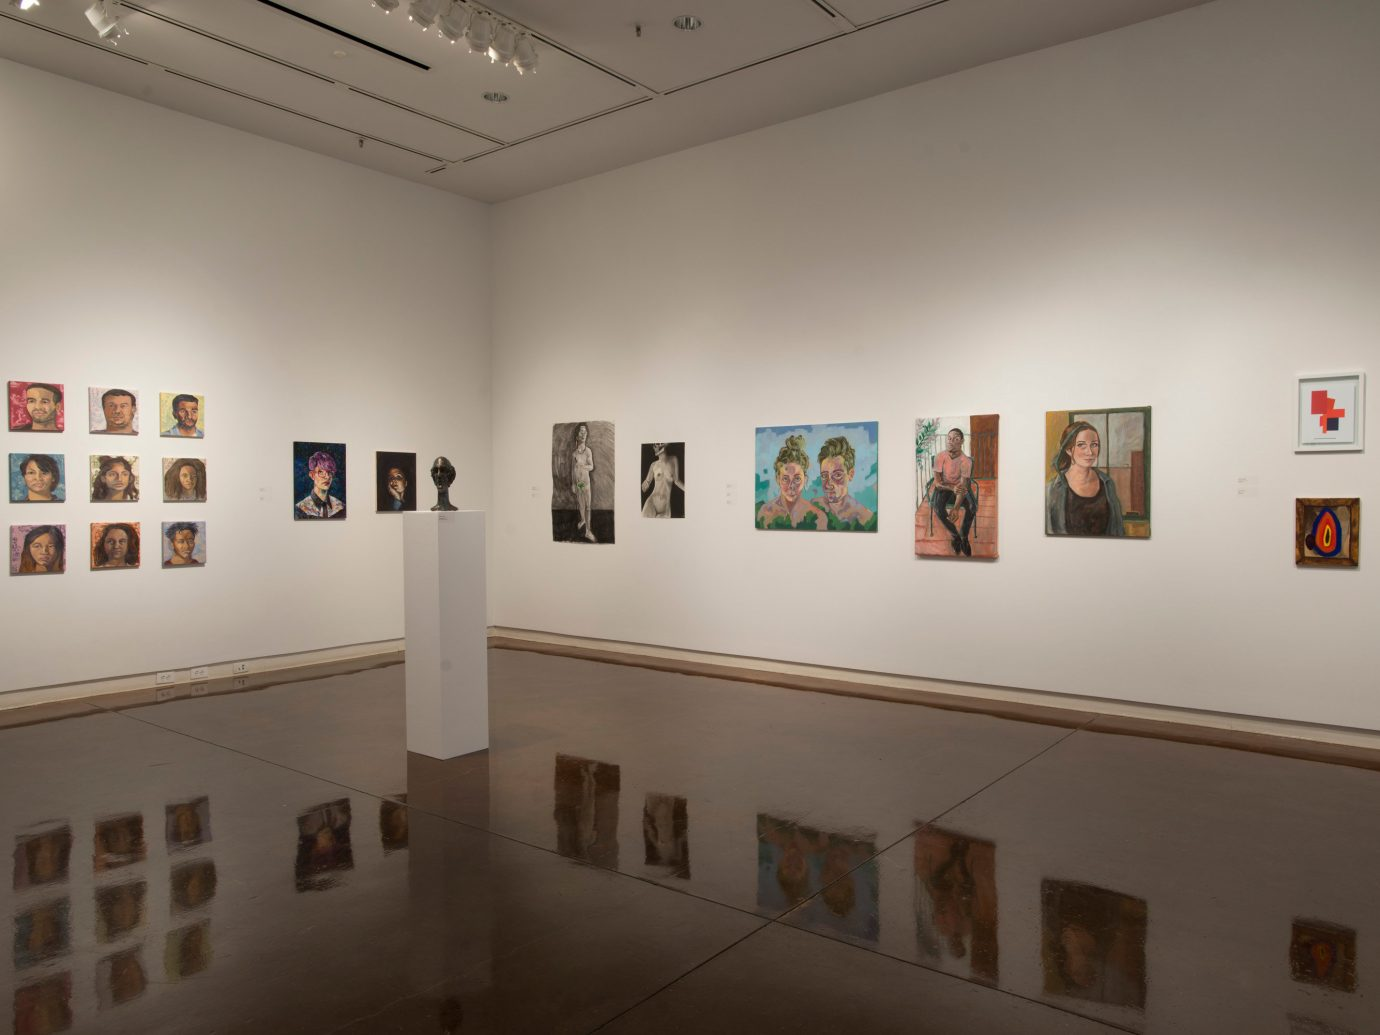 Gallery walls at The Halsey Institute of Contemporary Art